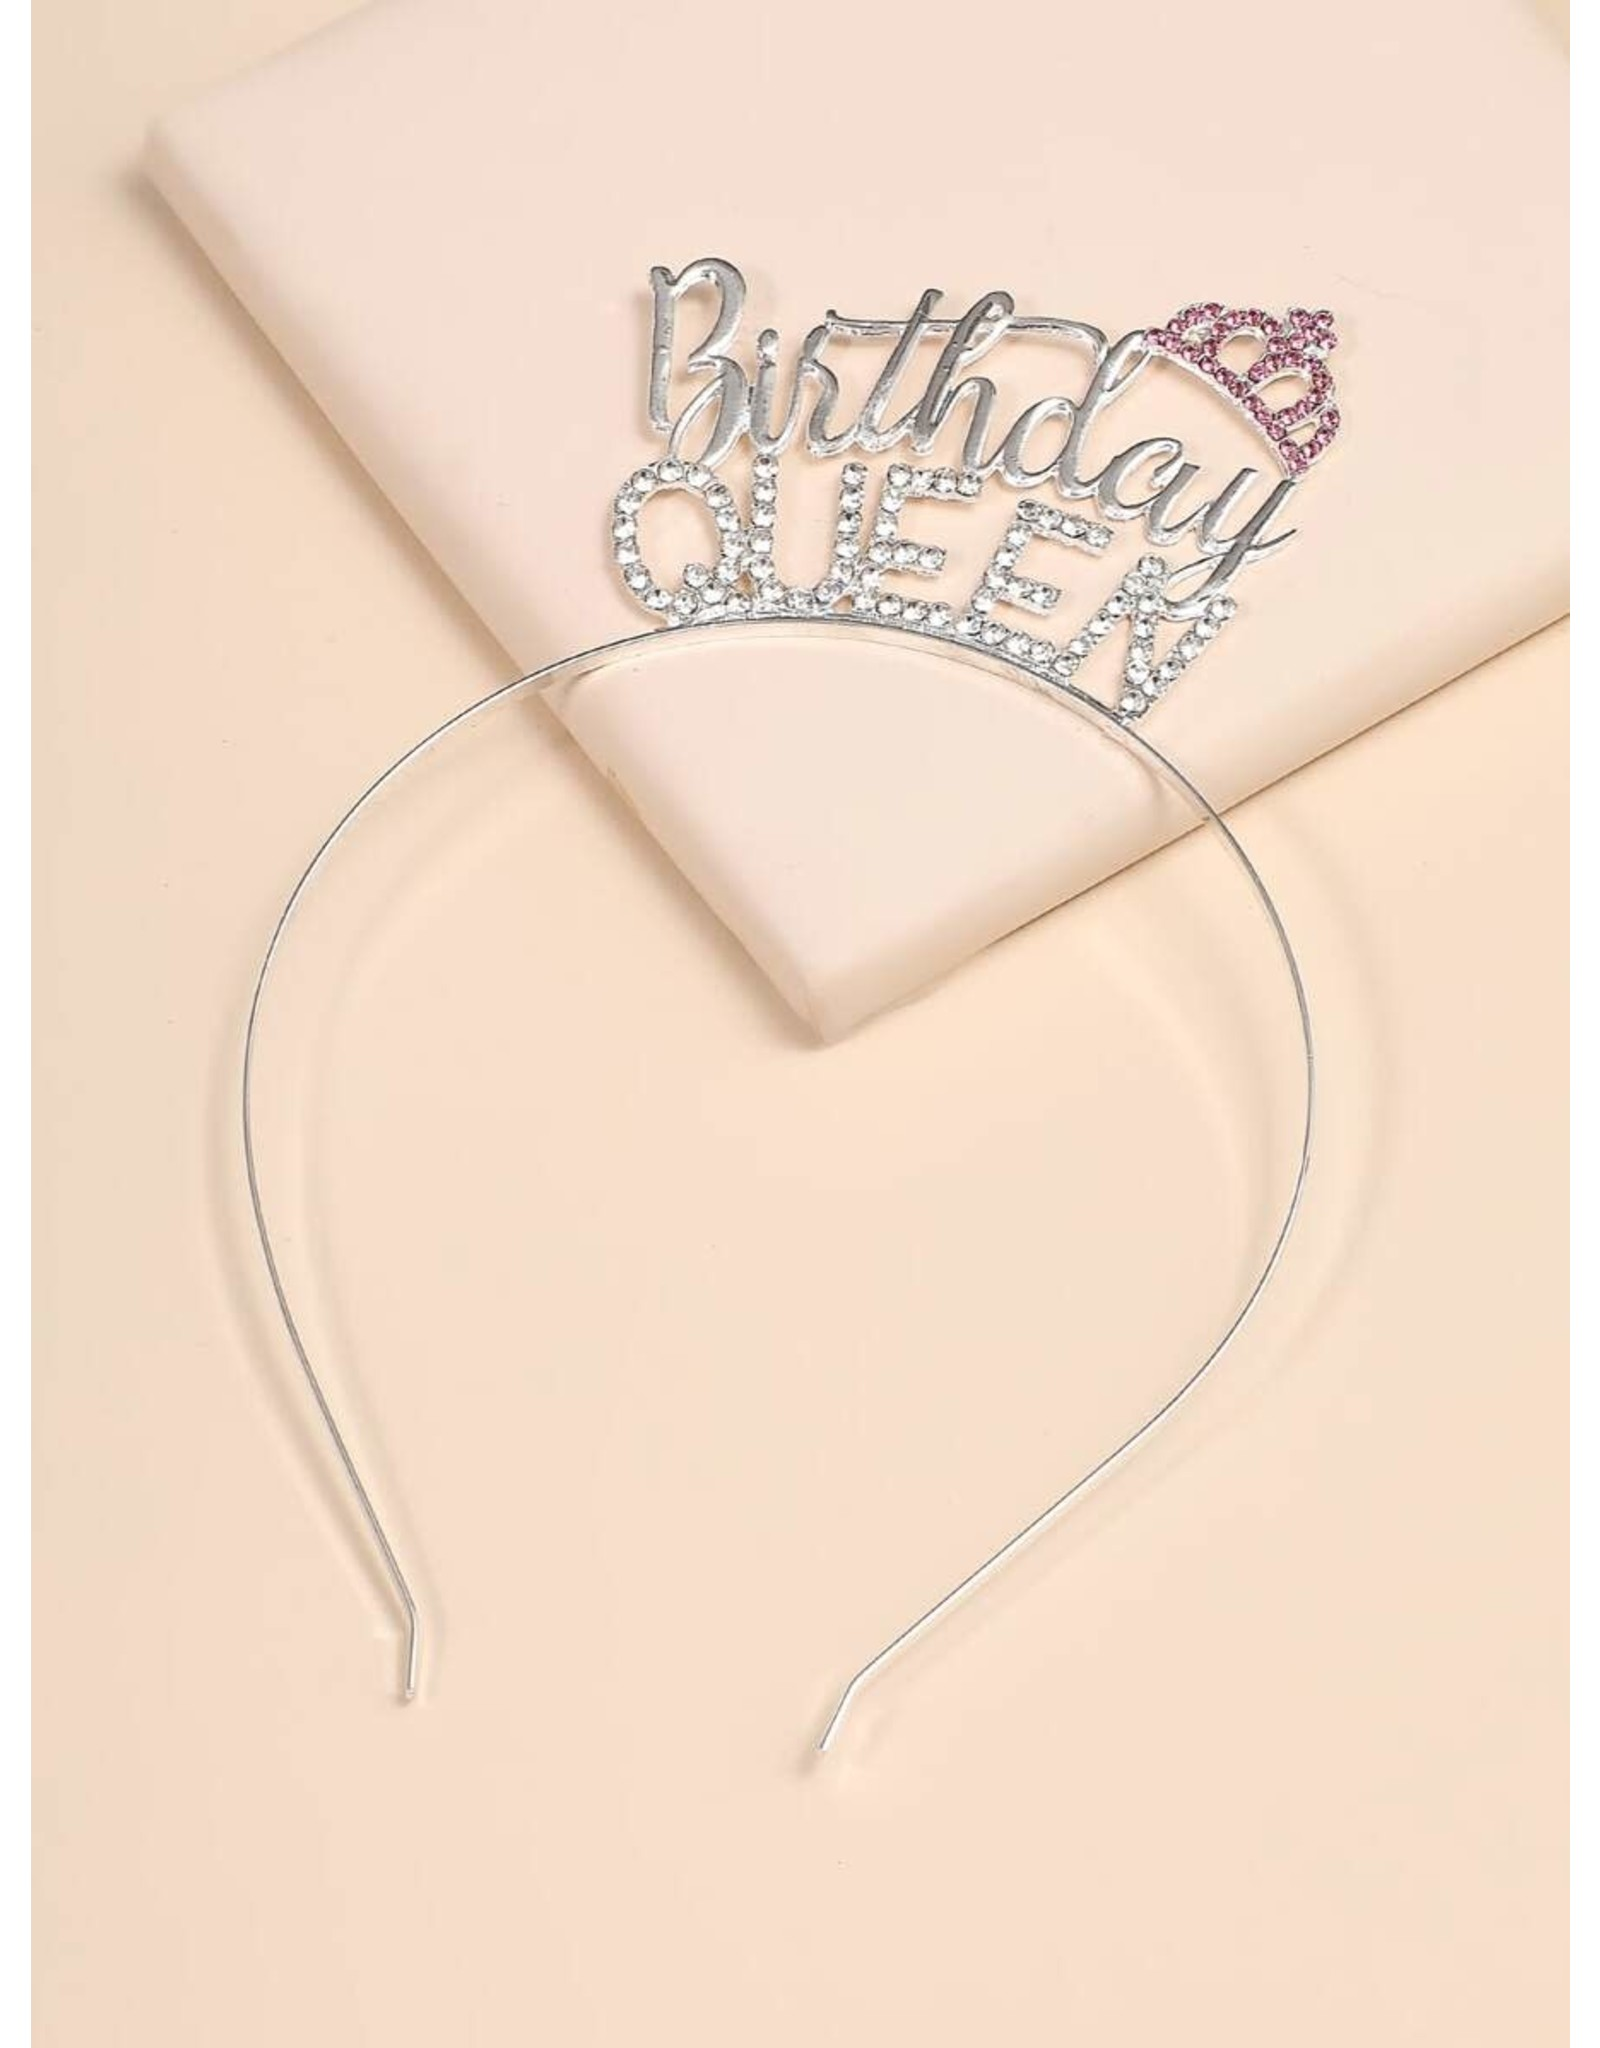 Shein Headband - Birthday Queen